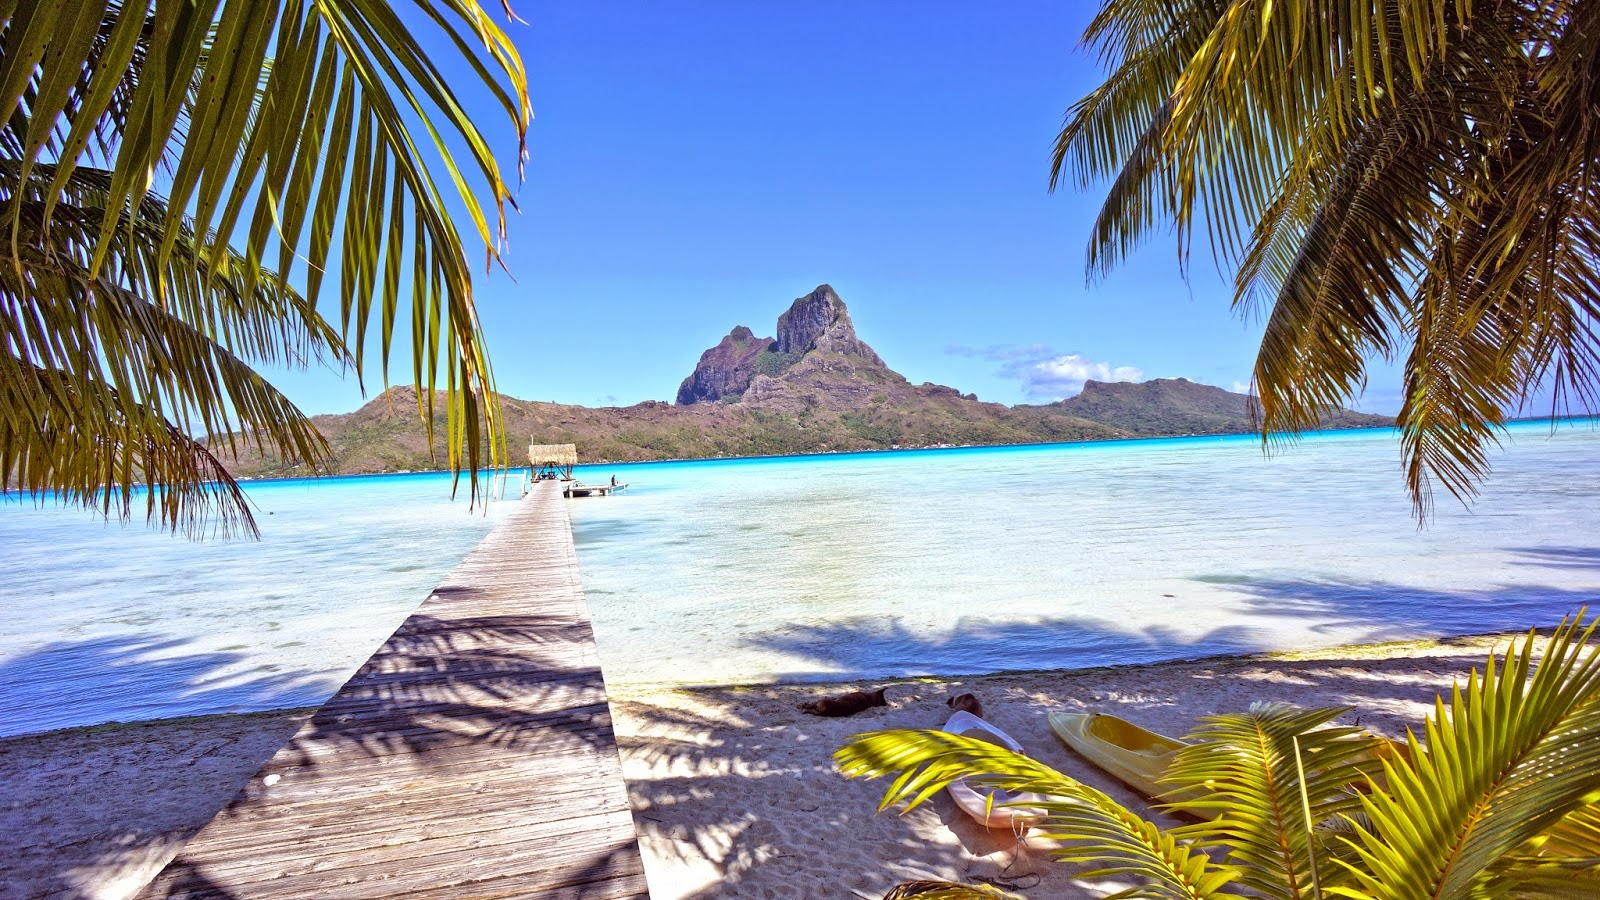 Travel tips: The world's best beaches, places, resorts ...